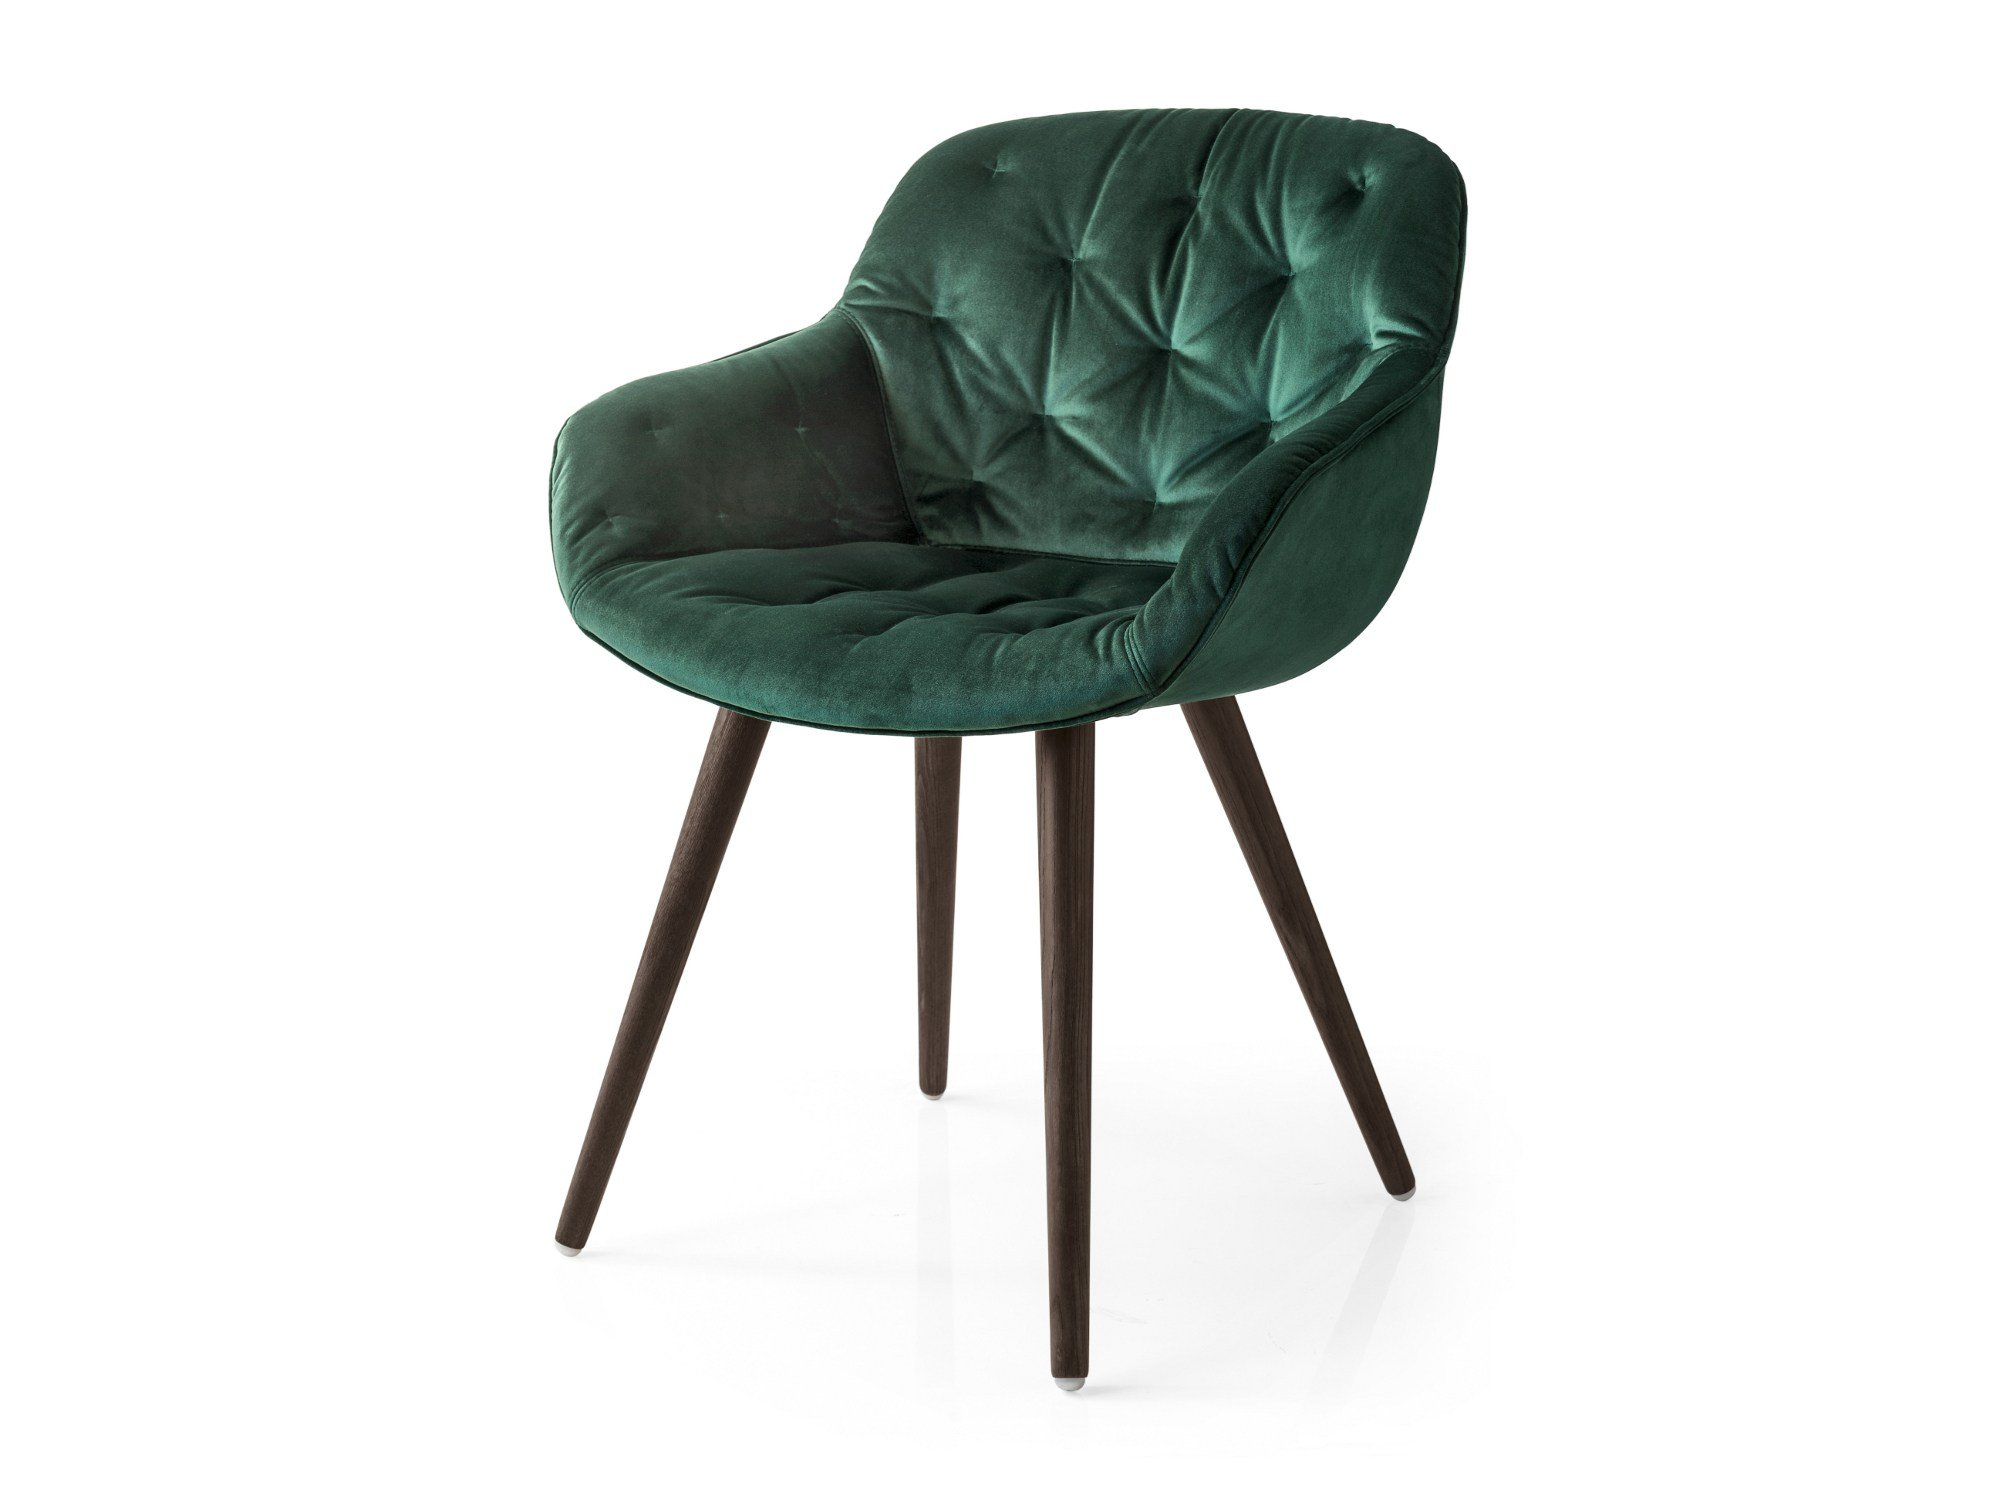 Tufted velvet guest chair IGLOO SOFT by Calligaris design ...